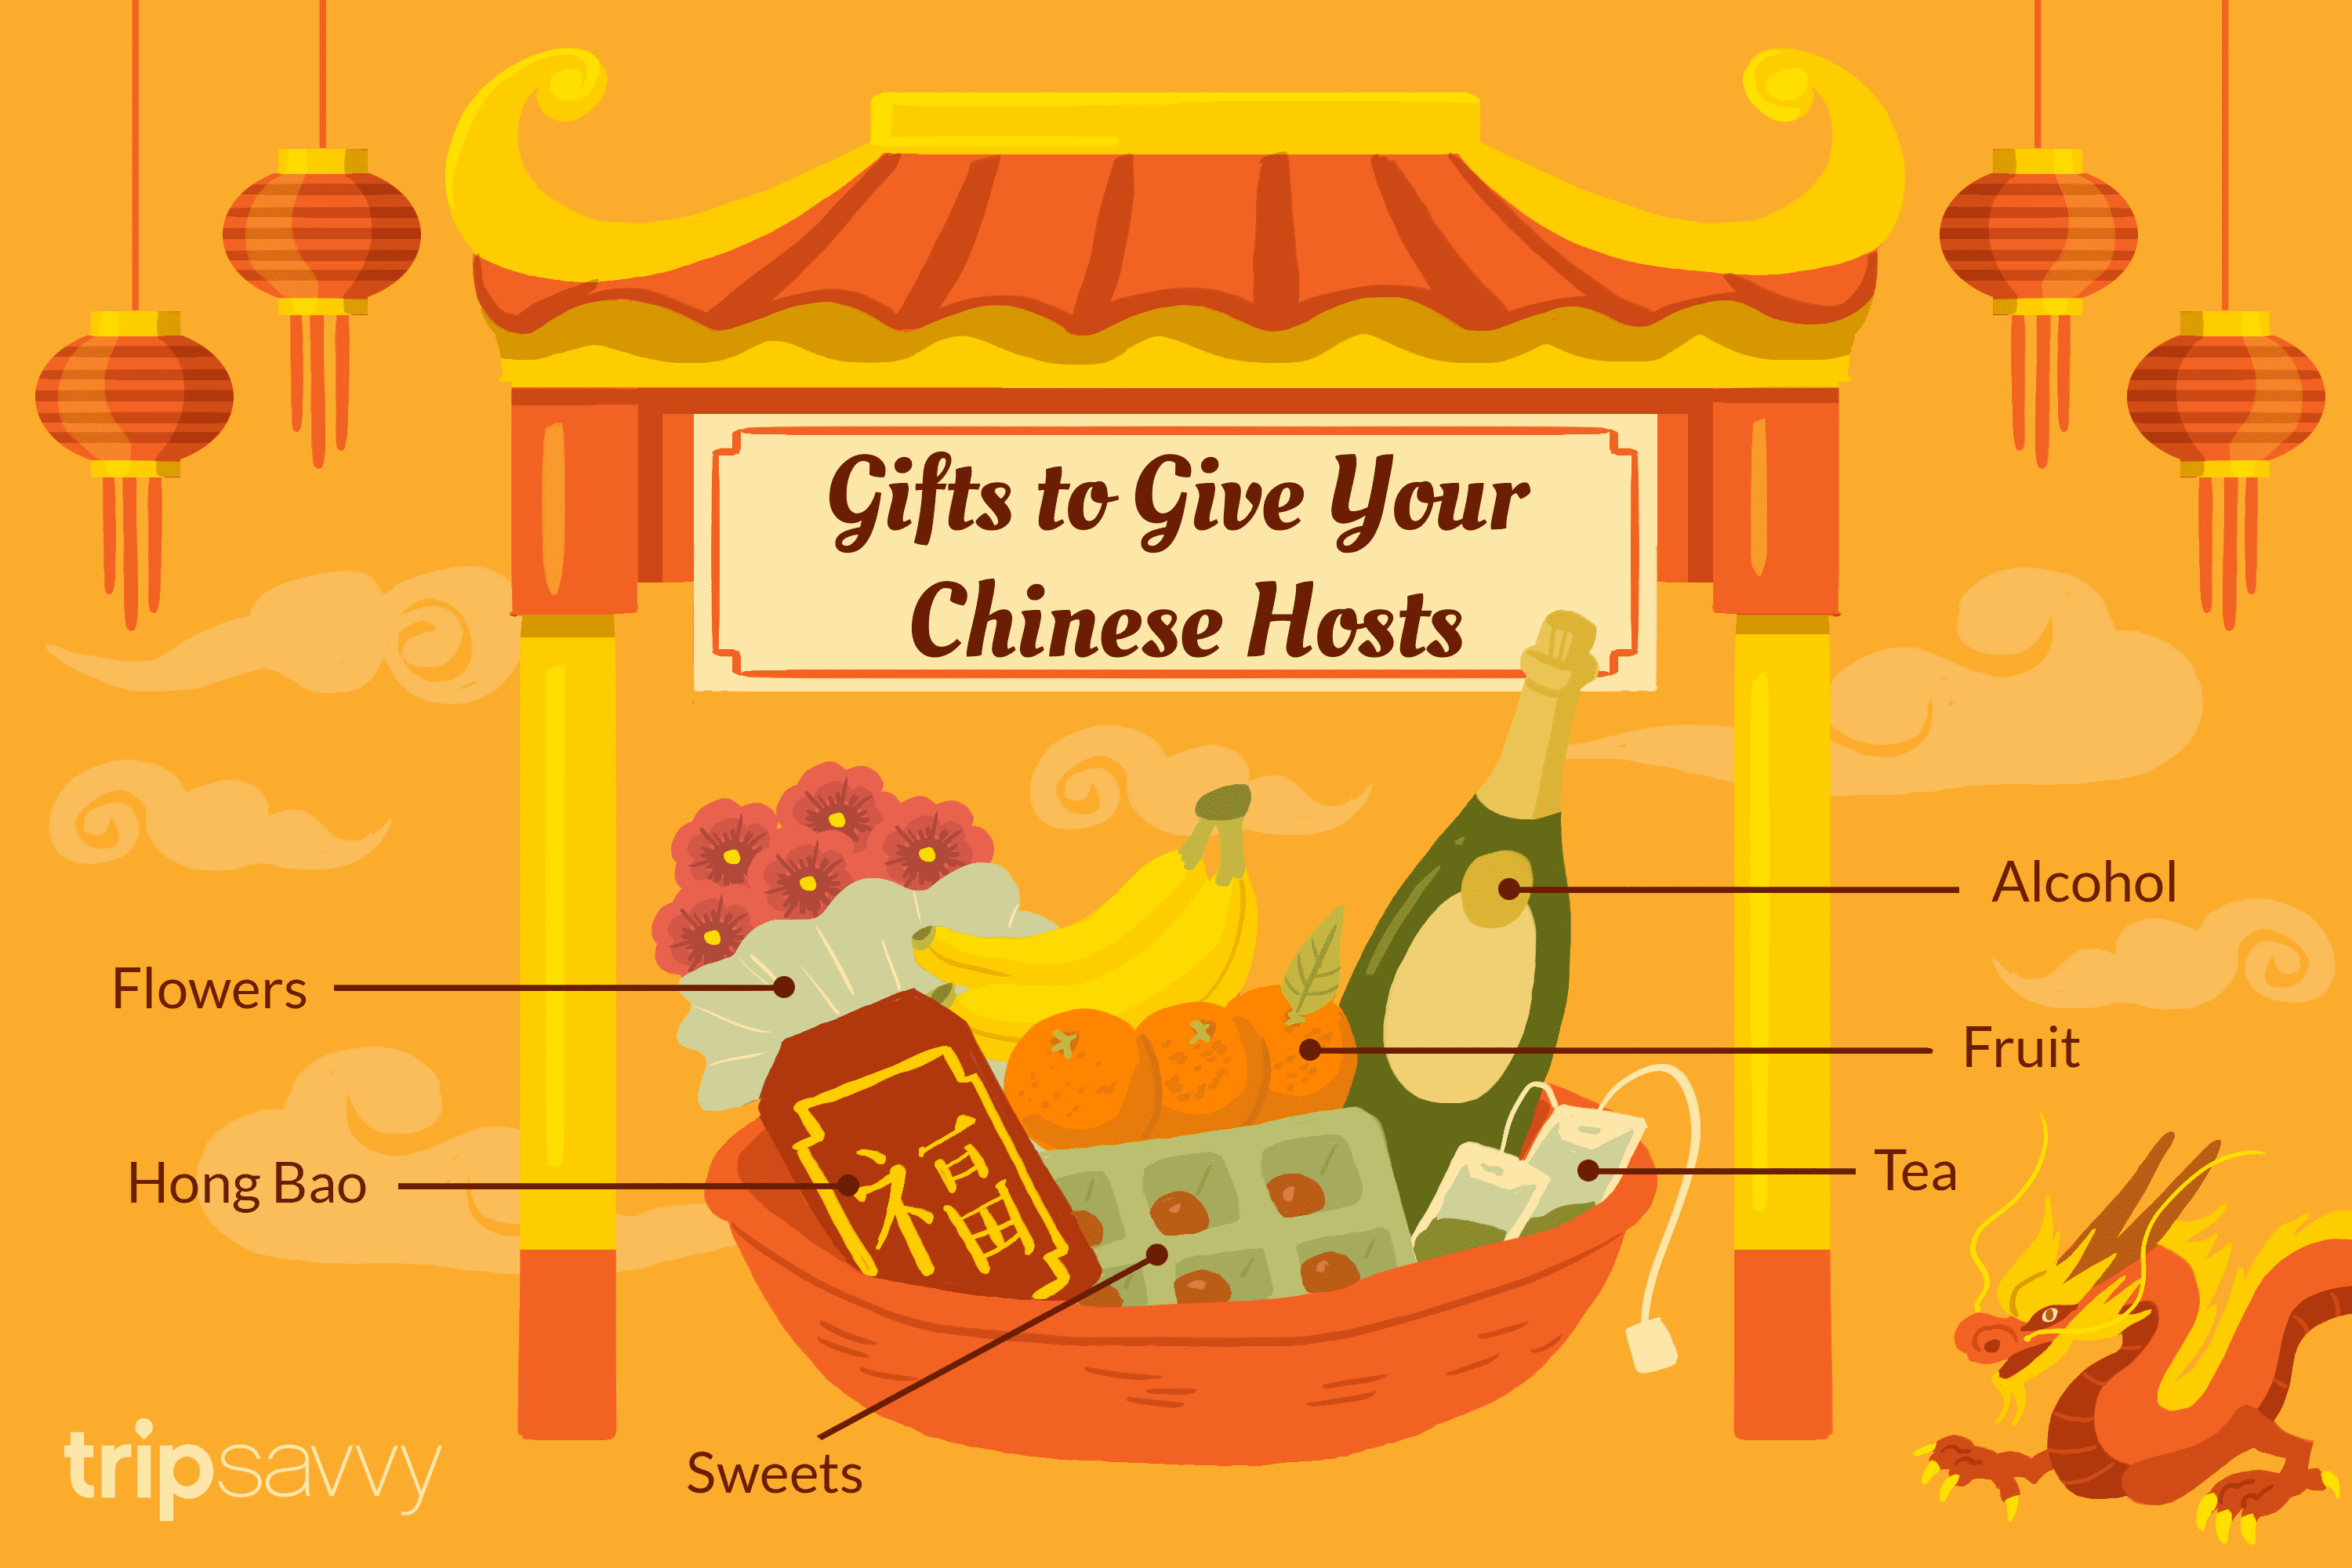 What To Give Your Hosts For Chinese New Year Or Spring